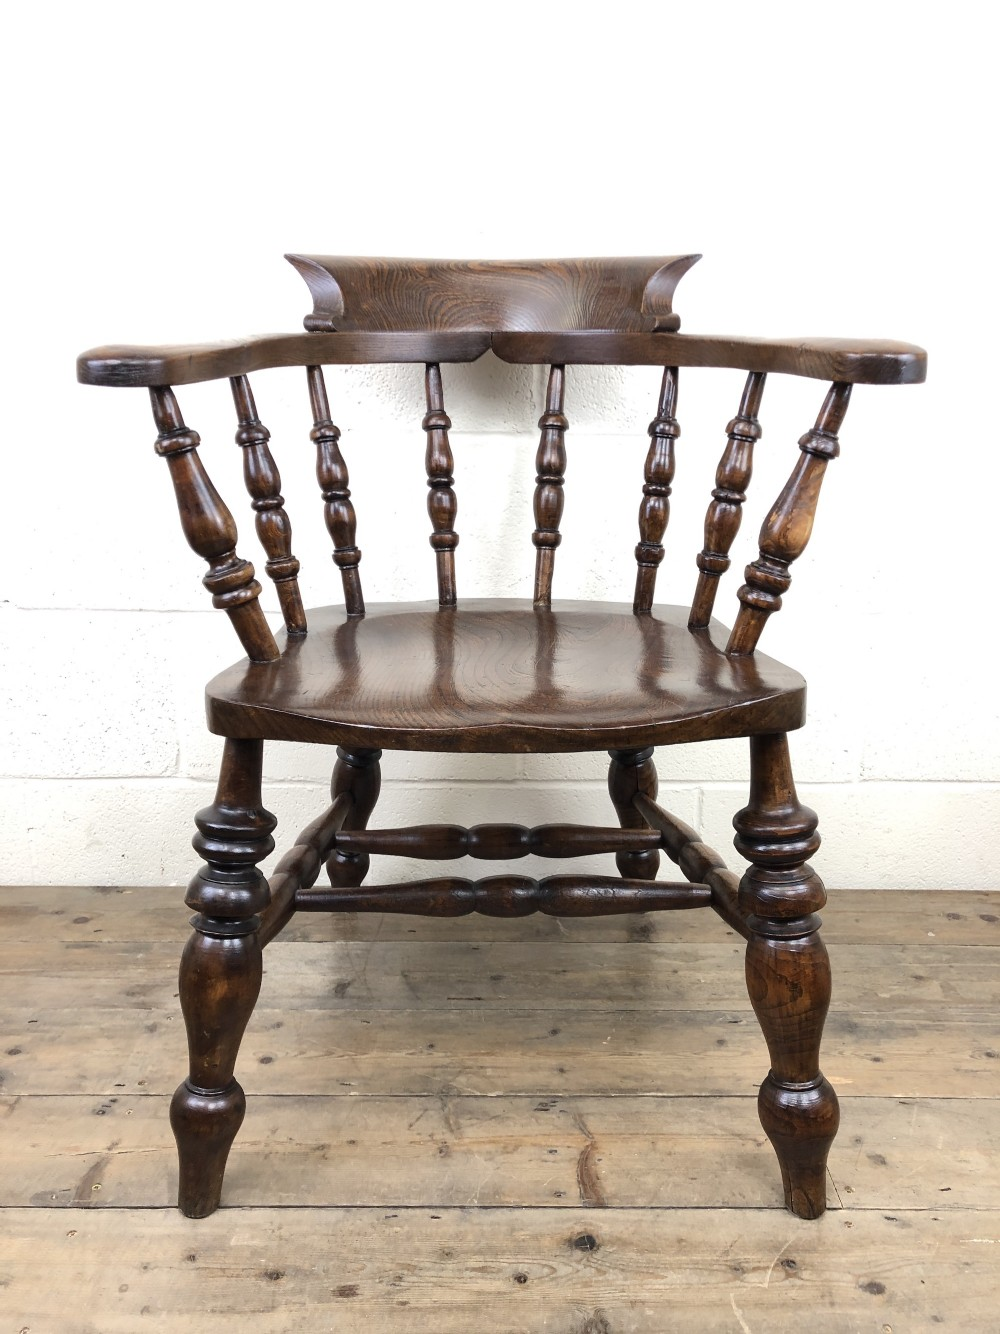 19th century ash and elm smokers bow chair or captains armchair